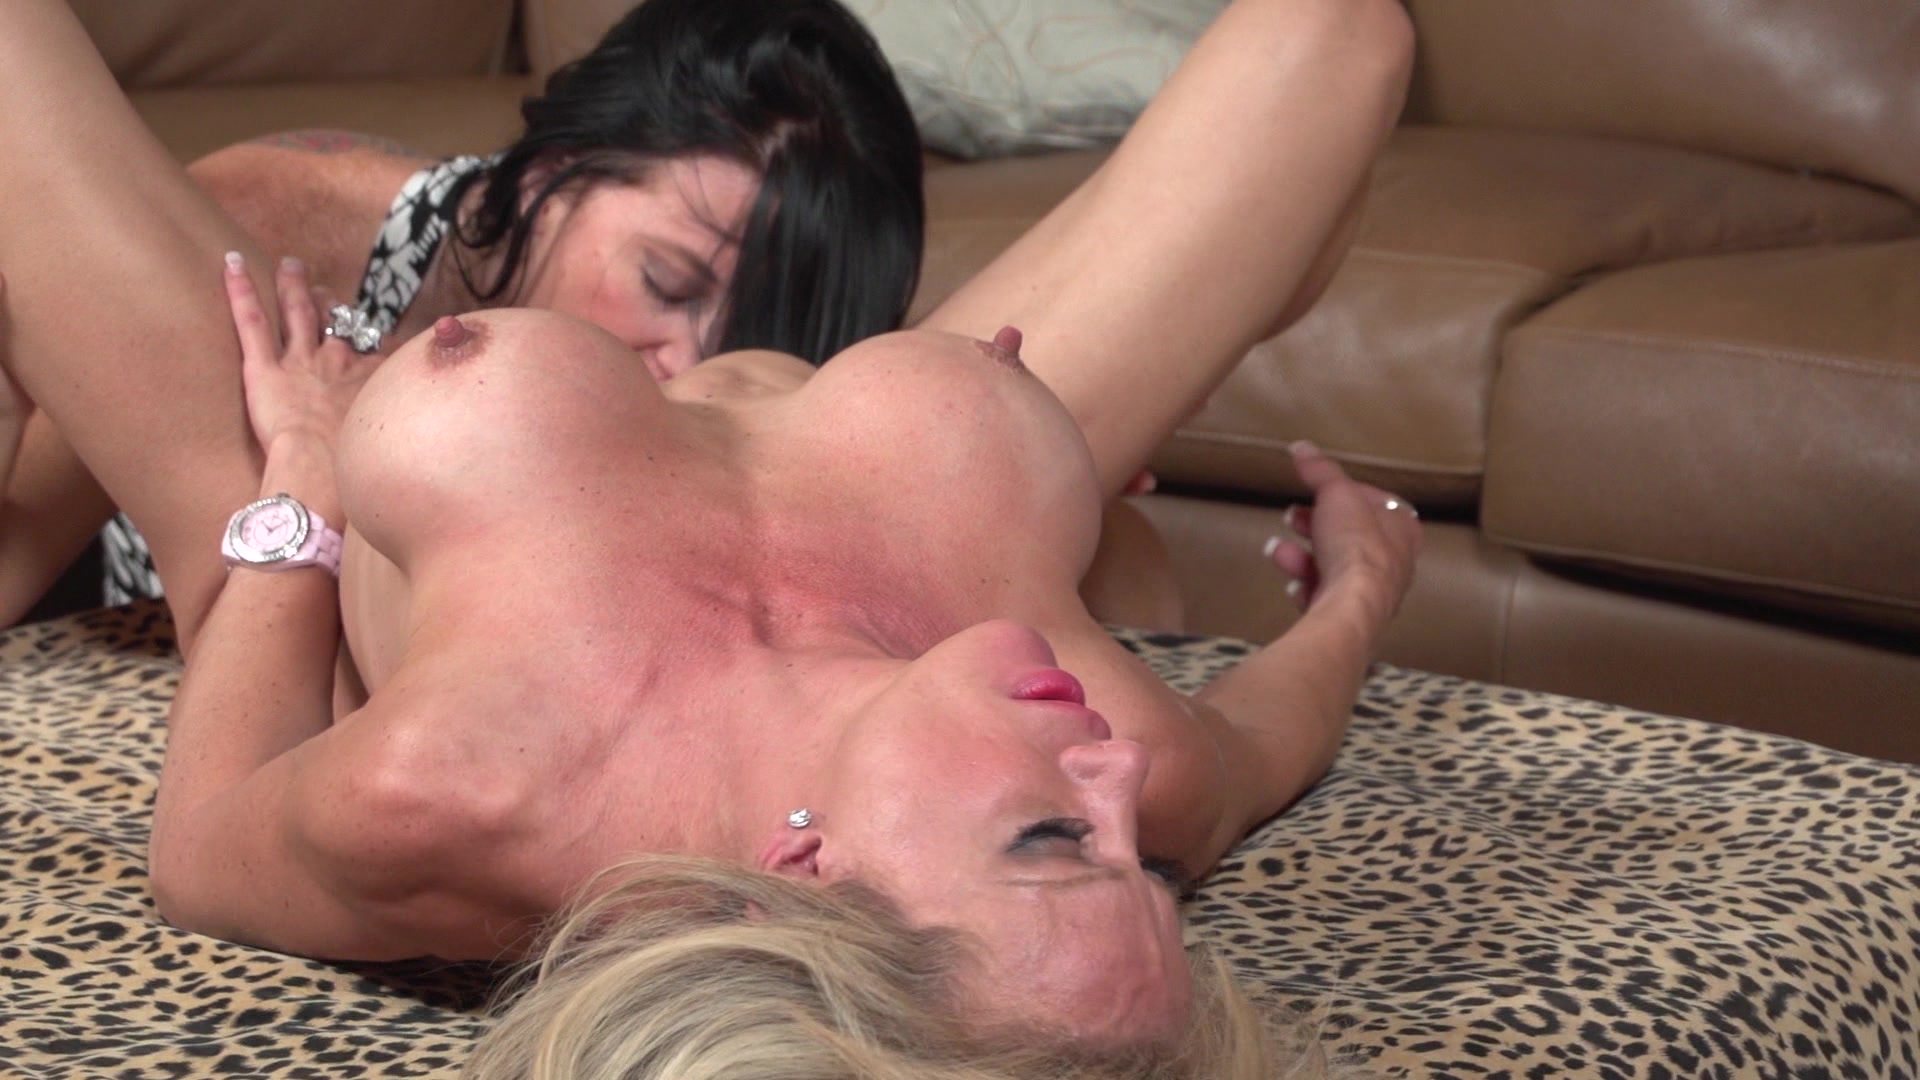 Two blonde lesbians having fun screwing each other with dildos